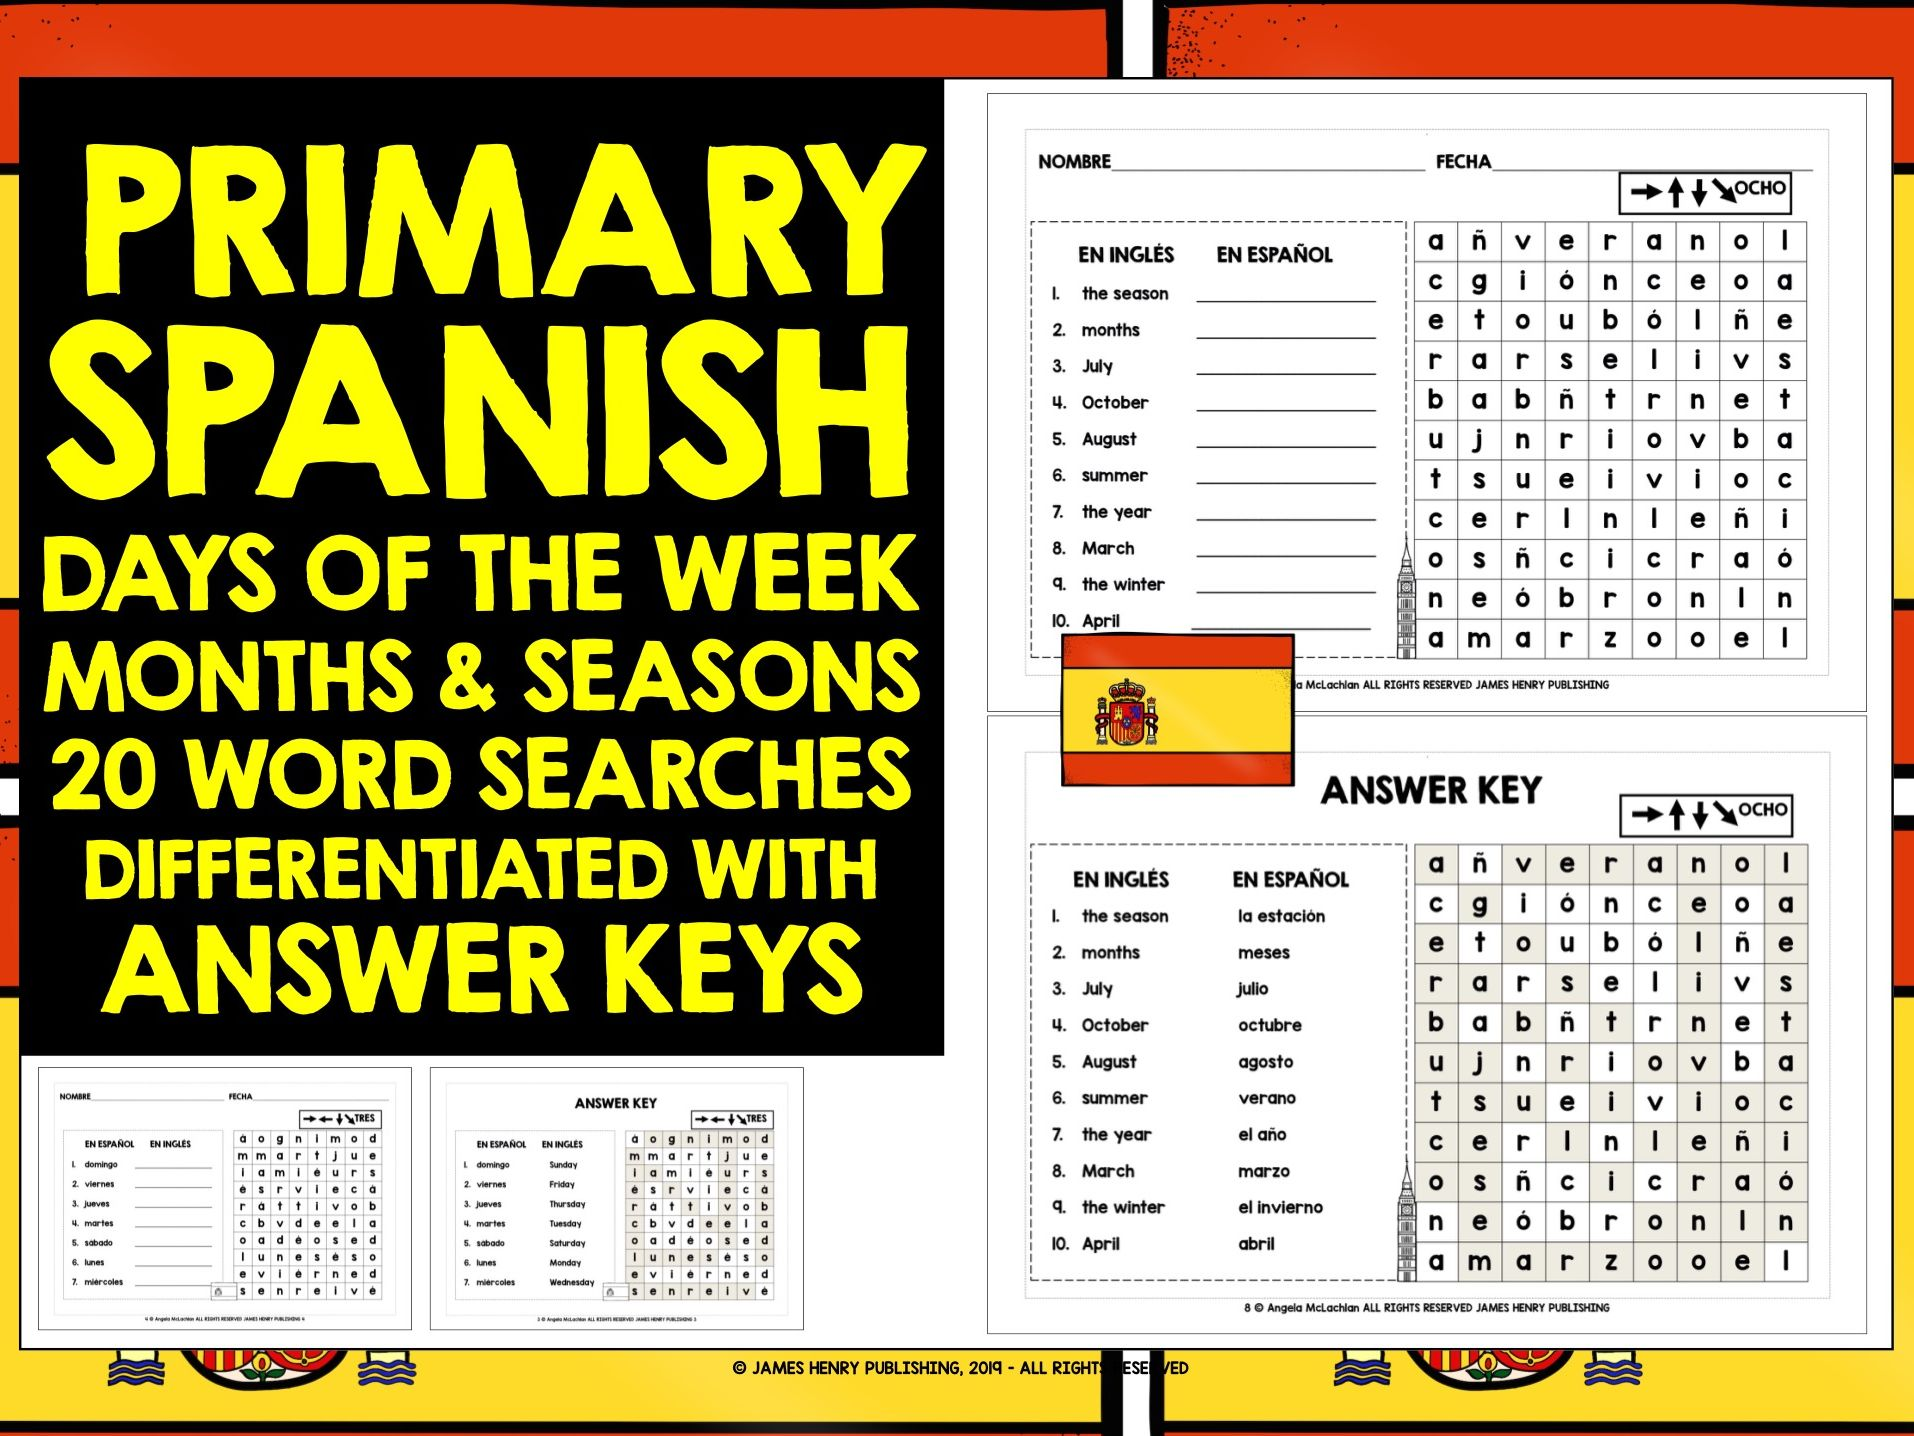 PRIMARY SPANISH DAYS MONTHS SEASONS WORD SEARCHES